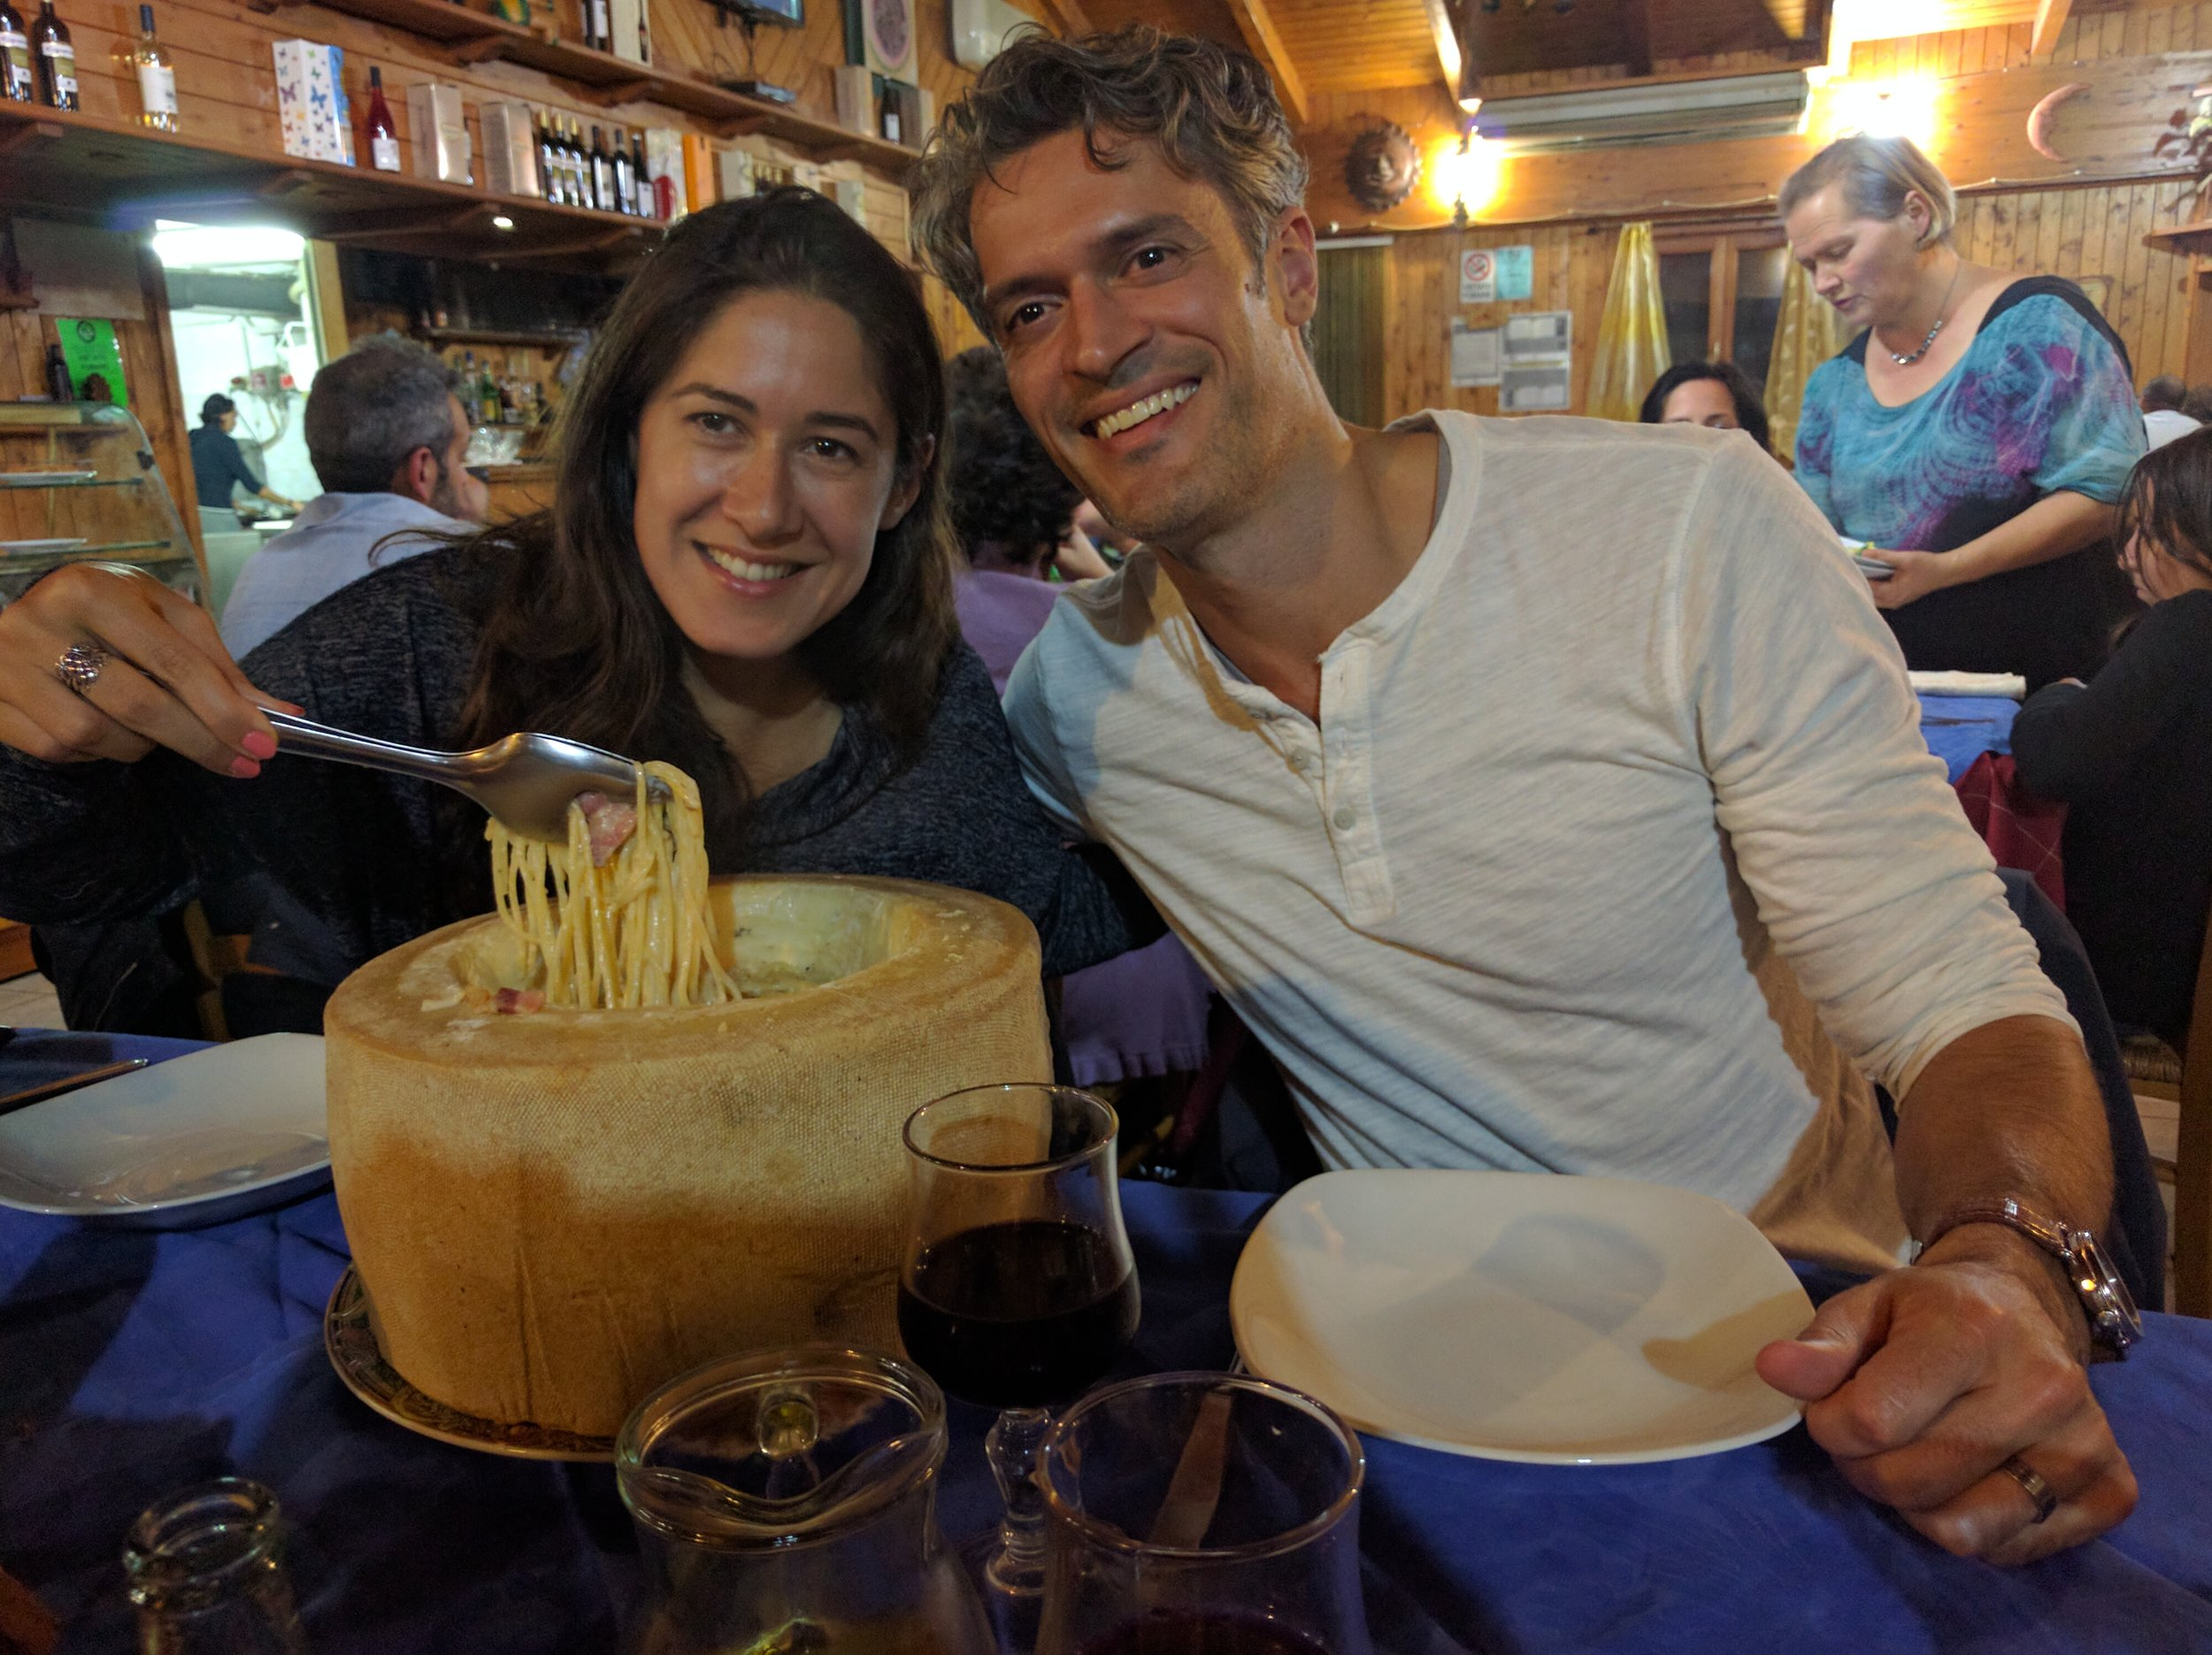 Cacio e pepe pasta inside a giant wheel of cheese. Mr. eats a lot. So do I. Still, we couldn't finish it...